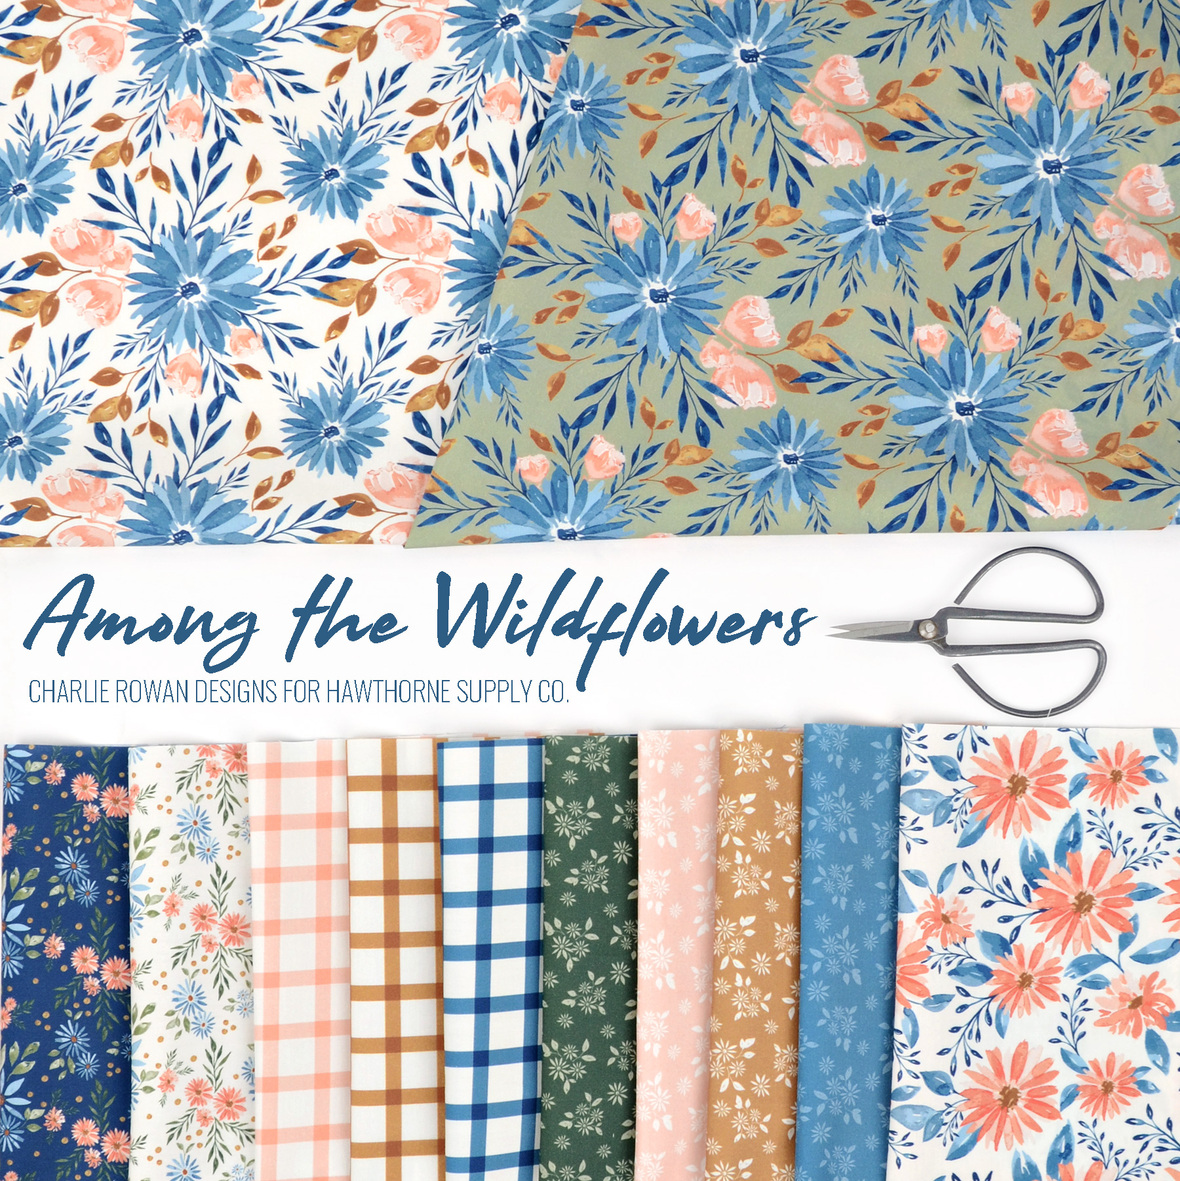 Among-the-Wildflowers-Charlie-Rowan-Designs-for-Hawthorne-Supply-Co